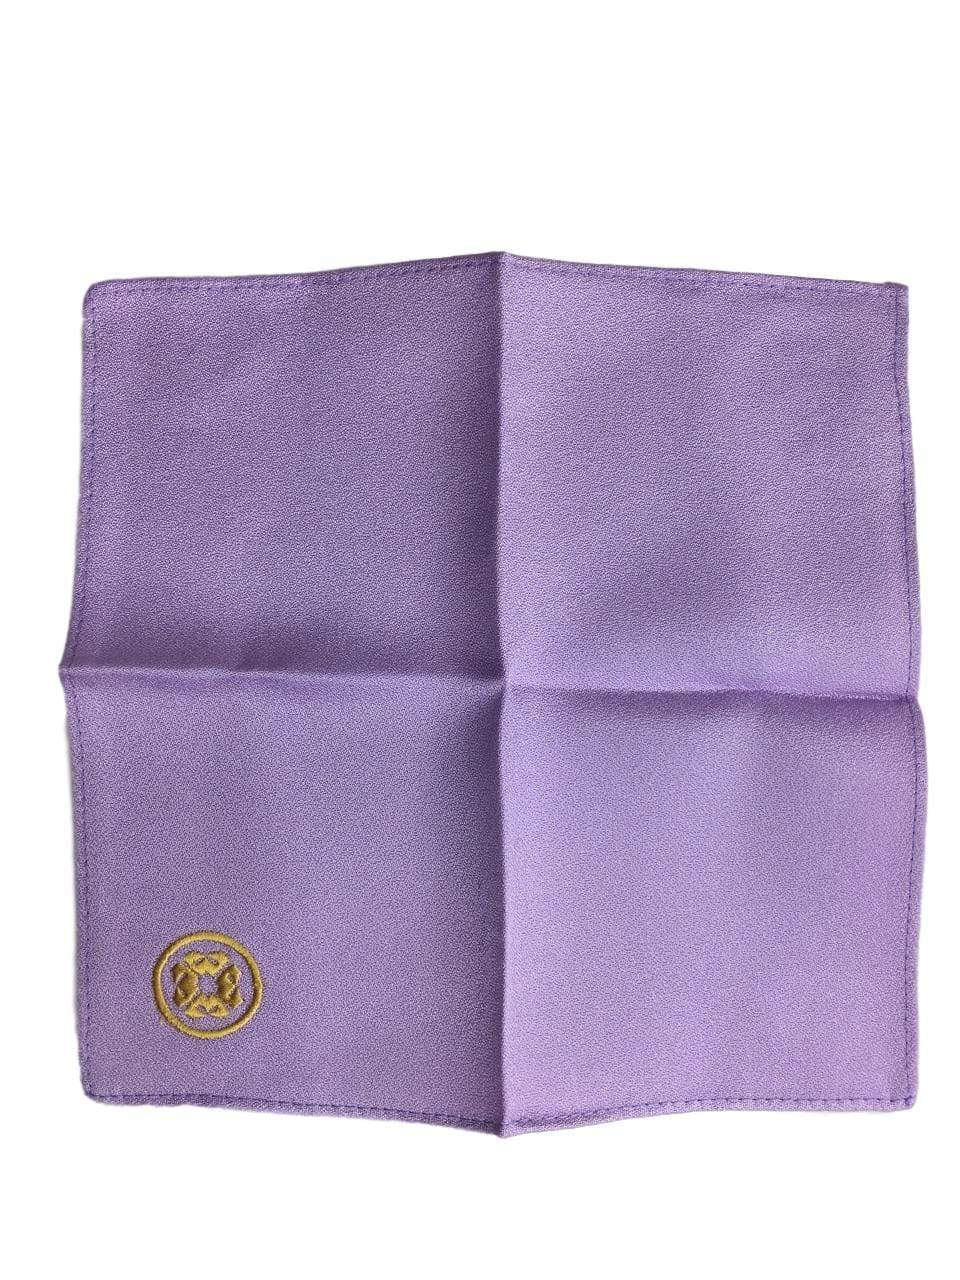 TATCHA Kinu Pure Silk Polishing Face Cloth 5 Pack, Tools & Accessories, London Loves Beauty